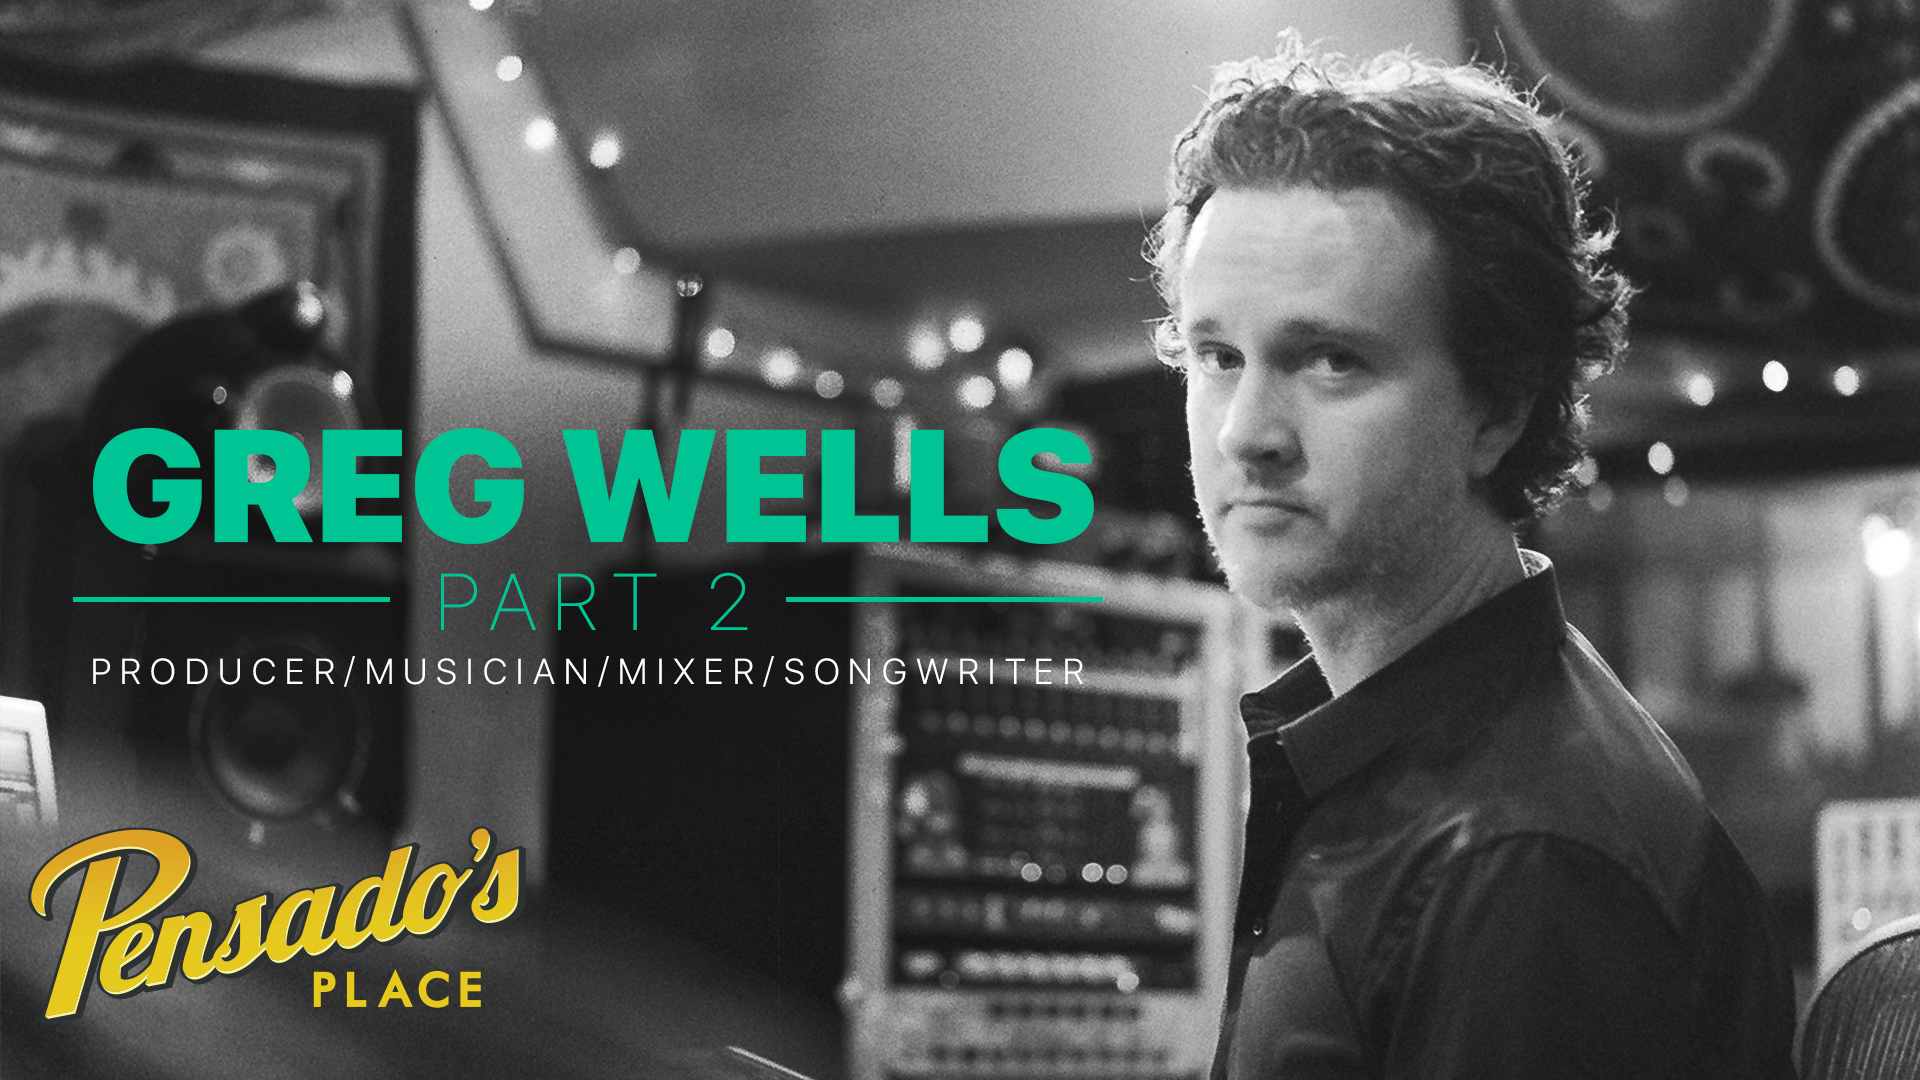 Producer / Musician / Mixer / Songwriter, Greg Wells (Pt 2)